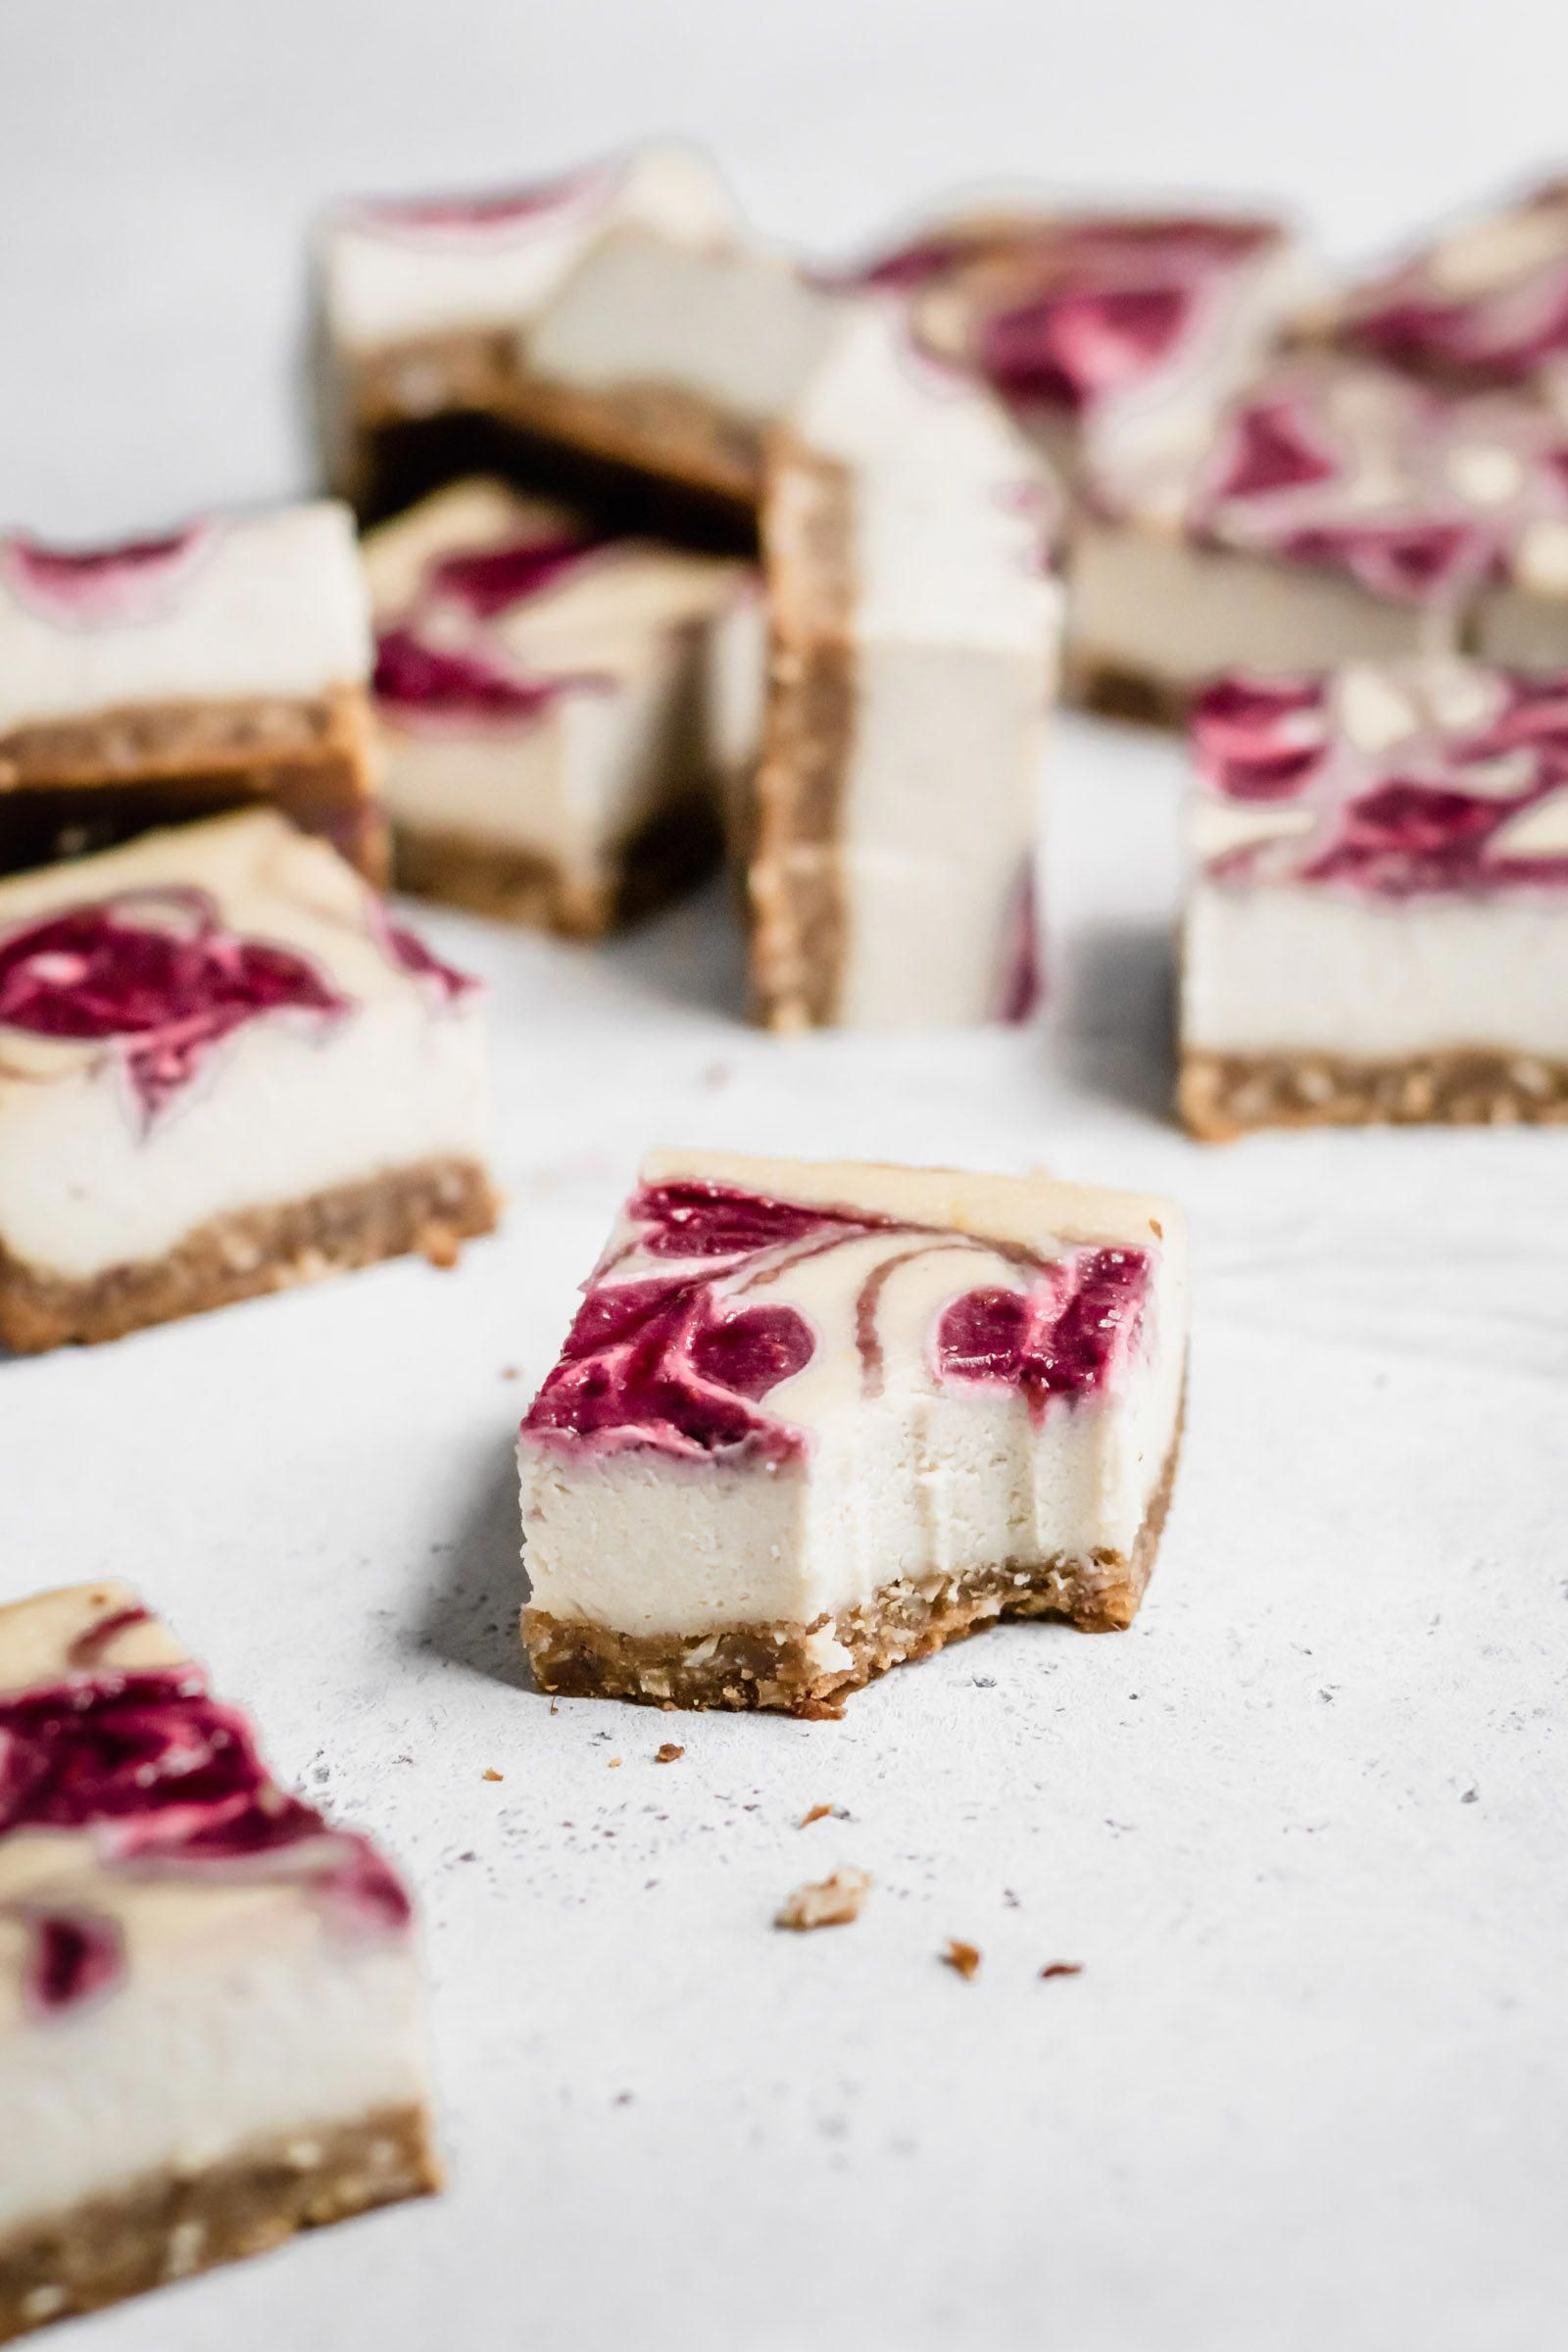 Paleo Lemon Raspberry Cheesecake Bars are the dessert of summer! These cheesecake bars are naturally vegan, made with cashews and coconut milk. They're incredibly creamy and decadent! #vegan #cheesecake #paleo #raspberry #lemon #glutenfree #vegandessert #paleodessert #cheesecakebars #grainfree